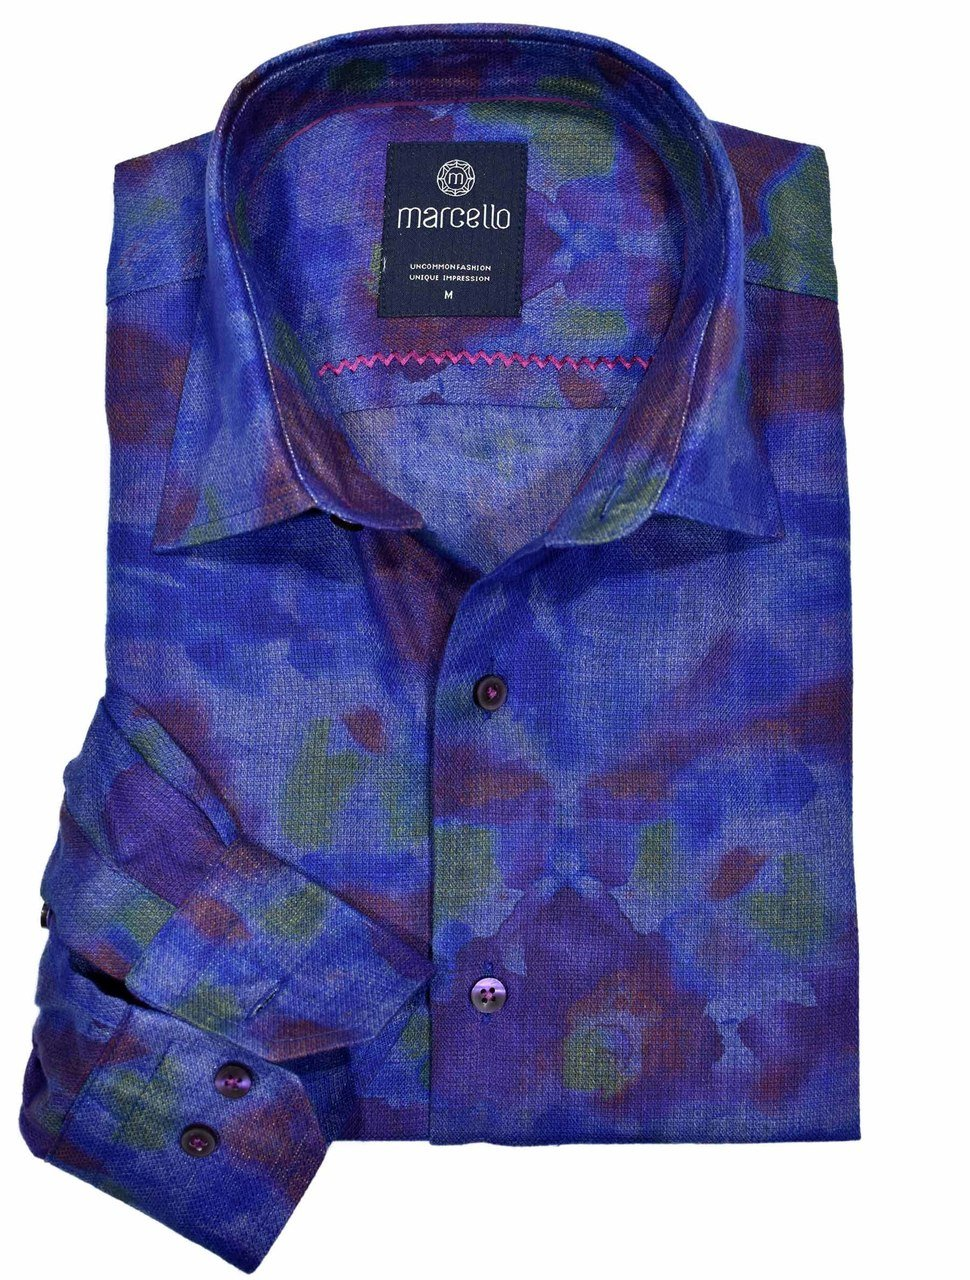 W1085 Colored Hopsack Shirt - Marcello Sport